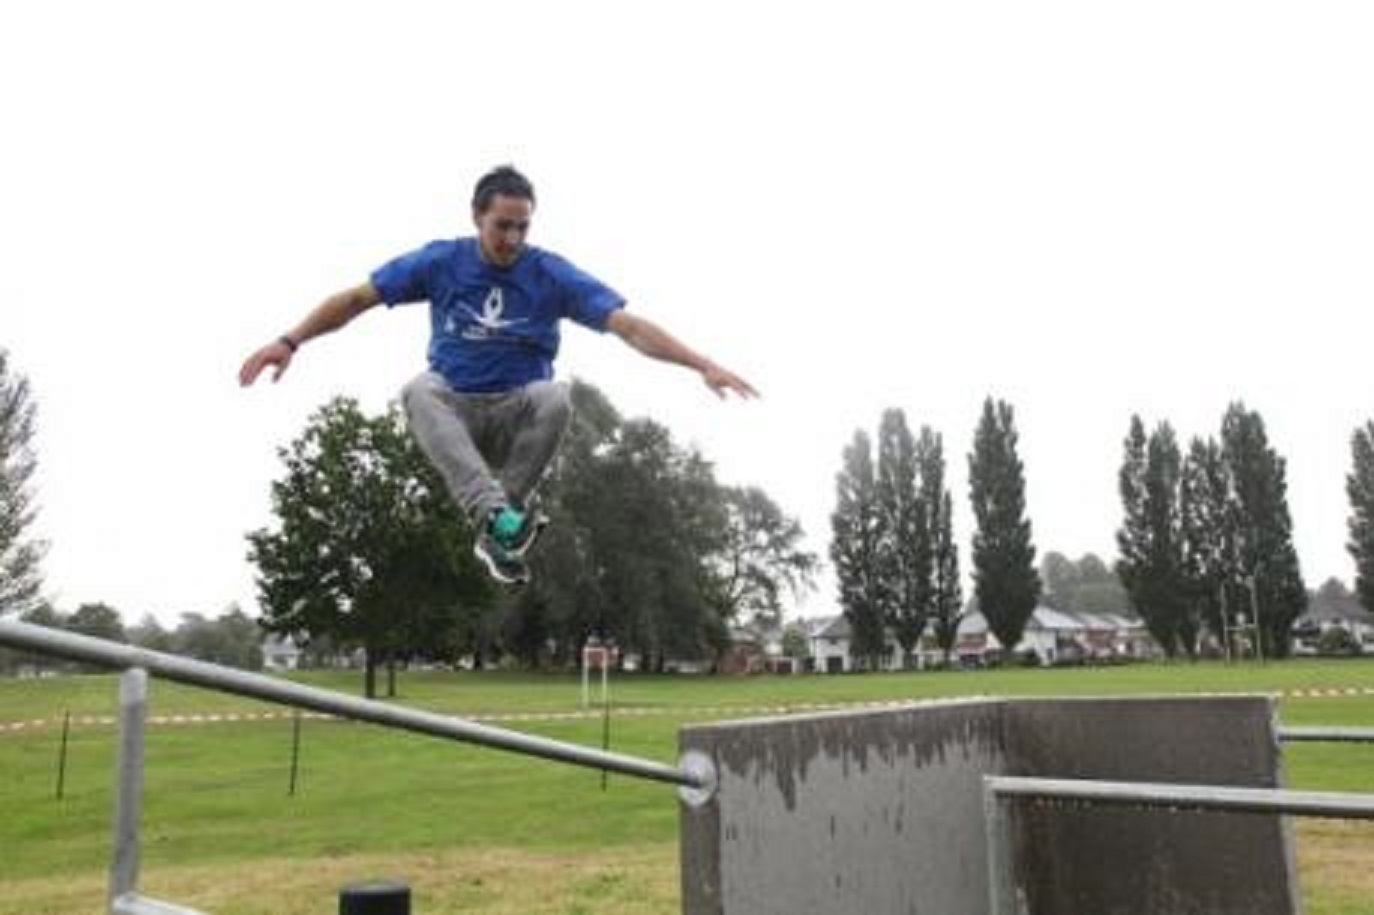 Parkour site will be good for community, says local coach